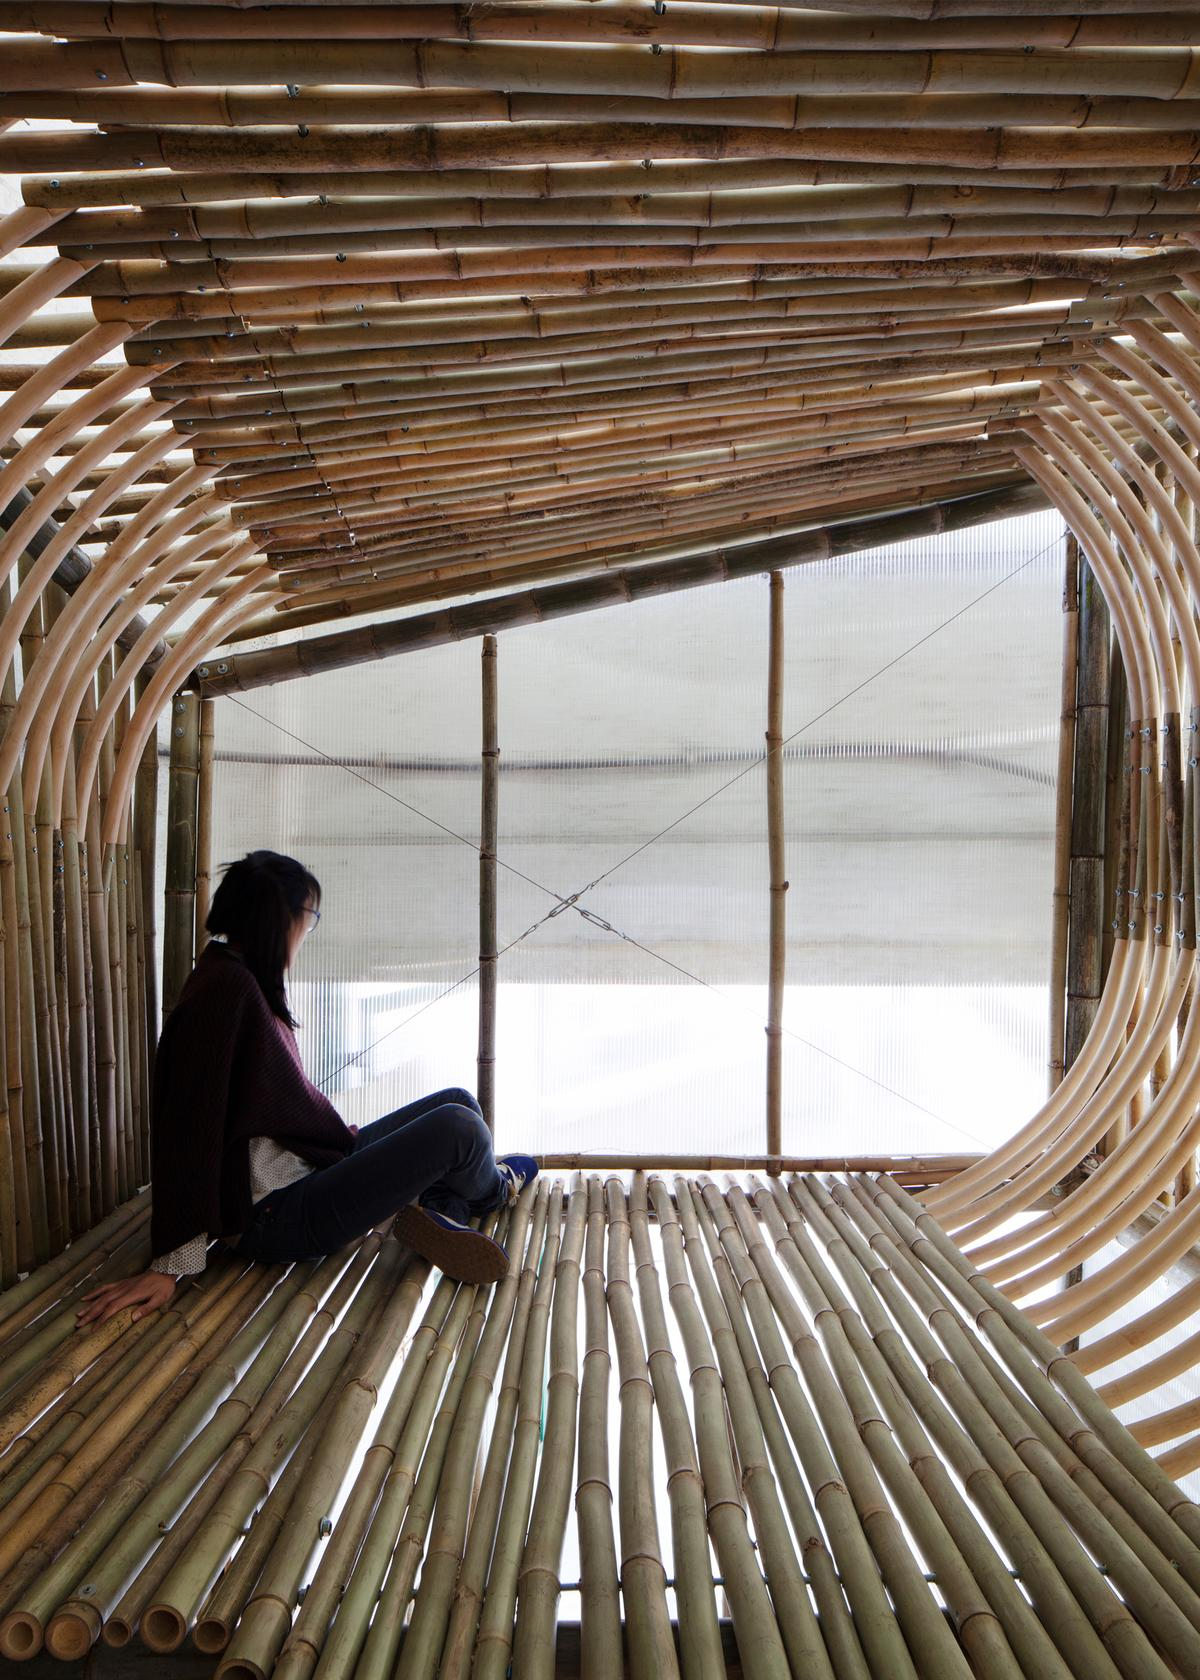 The Bamboo Micro-House prototype unit is designed by Hong Kong architectural firm AFFECT-T (Photo: AFFECT-T)